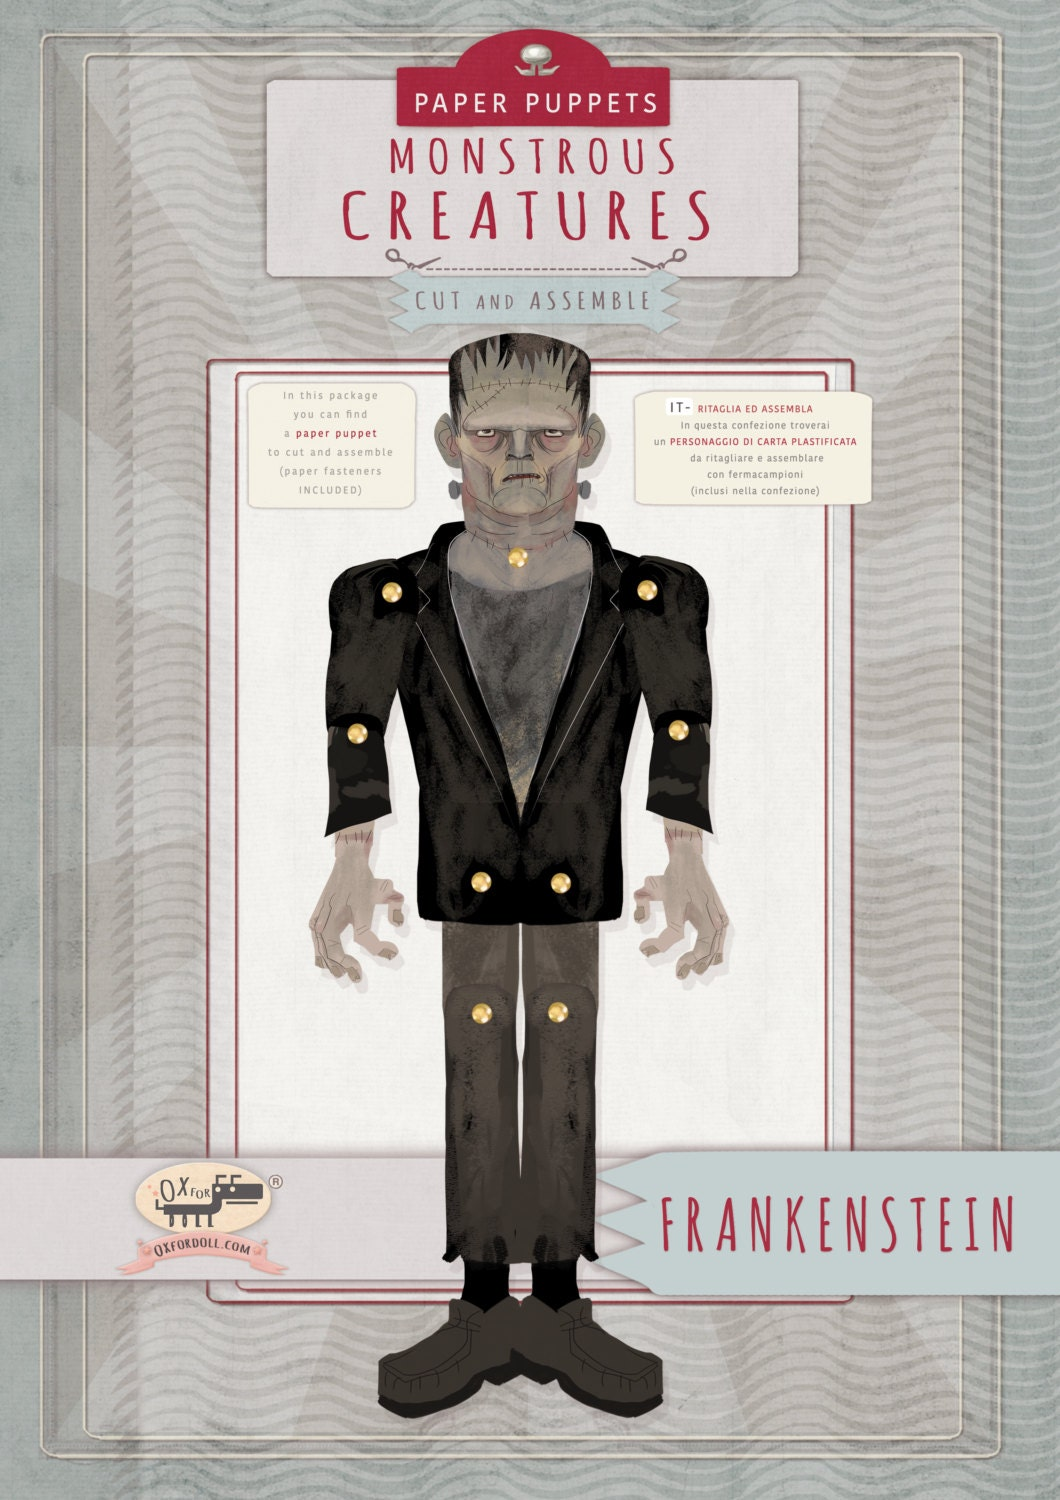 FrankensteinHalloween Kids Craft laminated paper toy Make your own Character